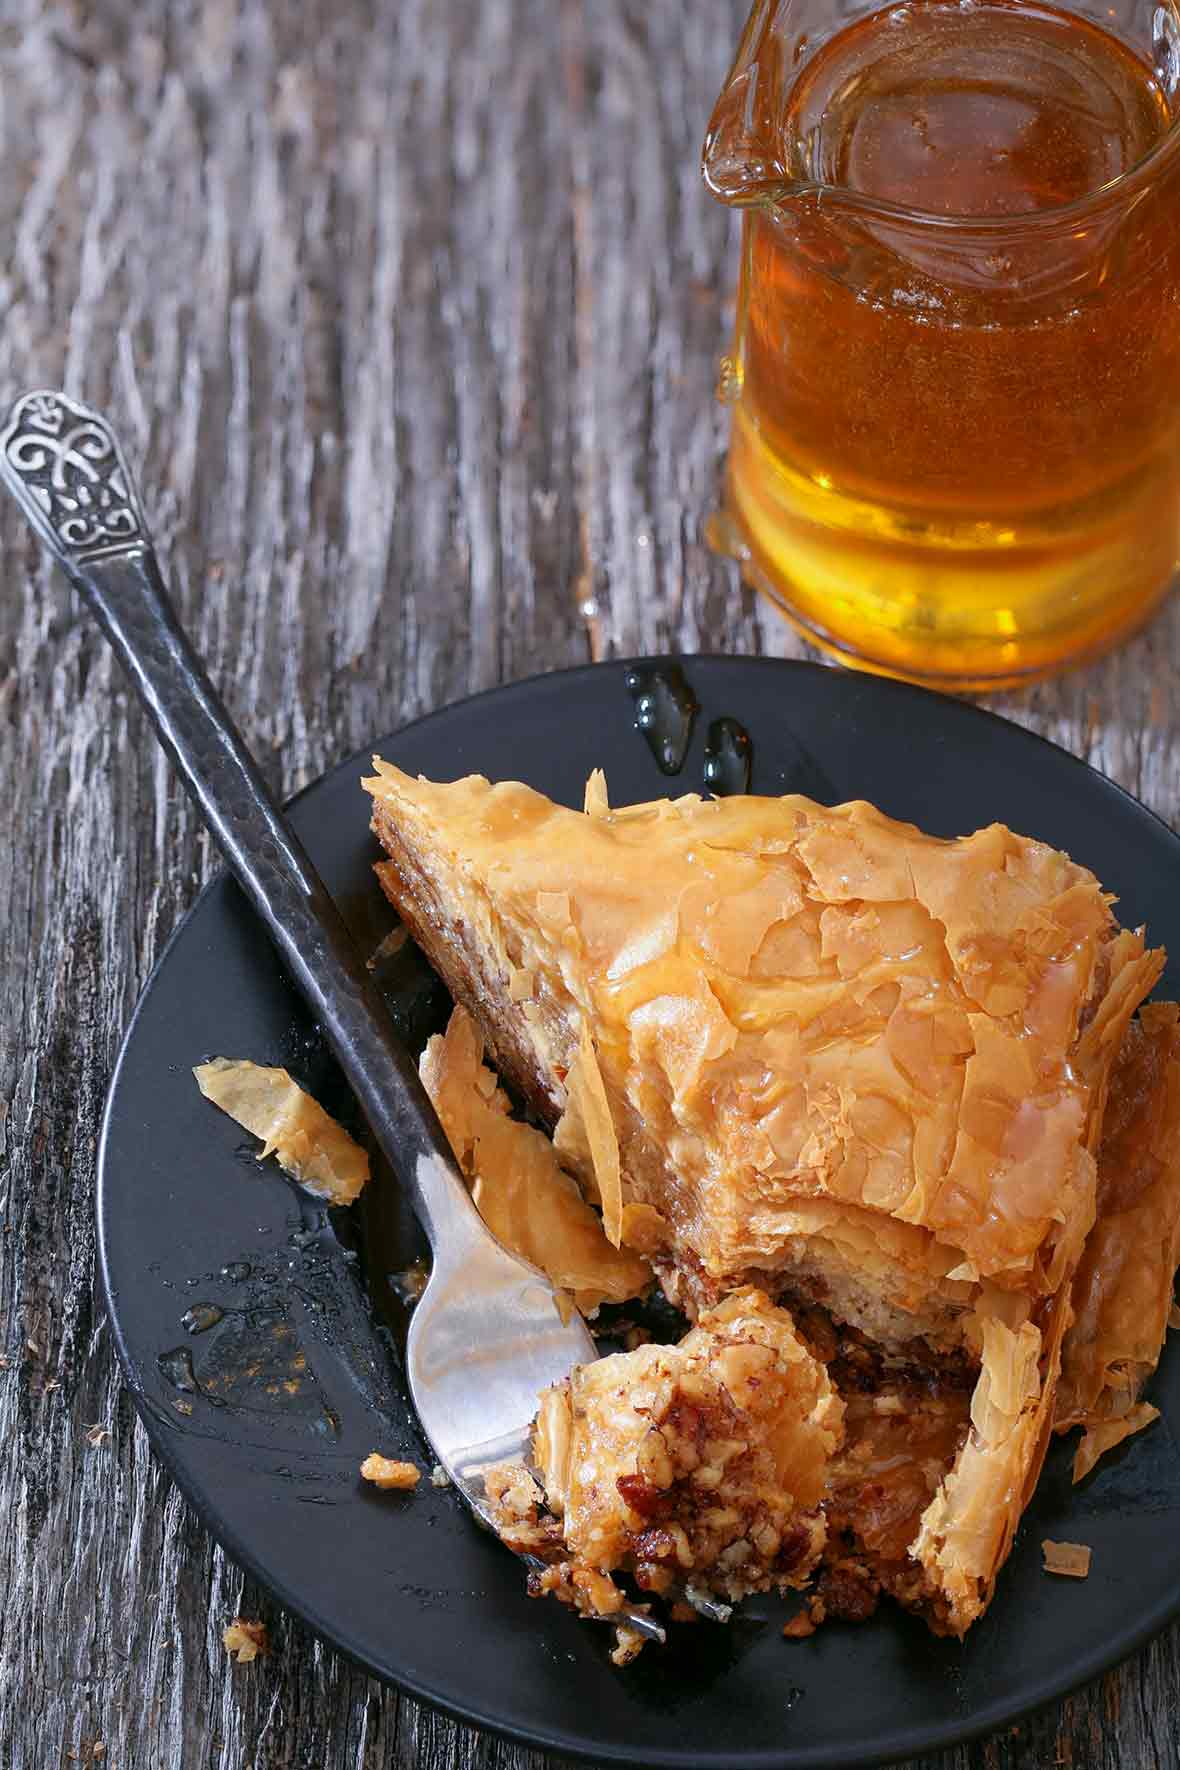 Triangular piece of Greek baklava, with layers of filo or phyllo dough filled with chopped walnuts, drizzled with honey on a black plate